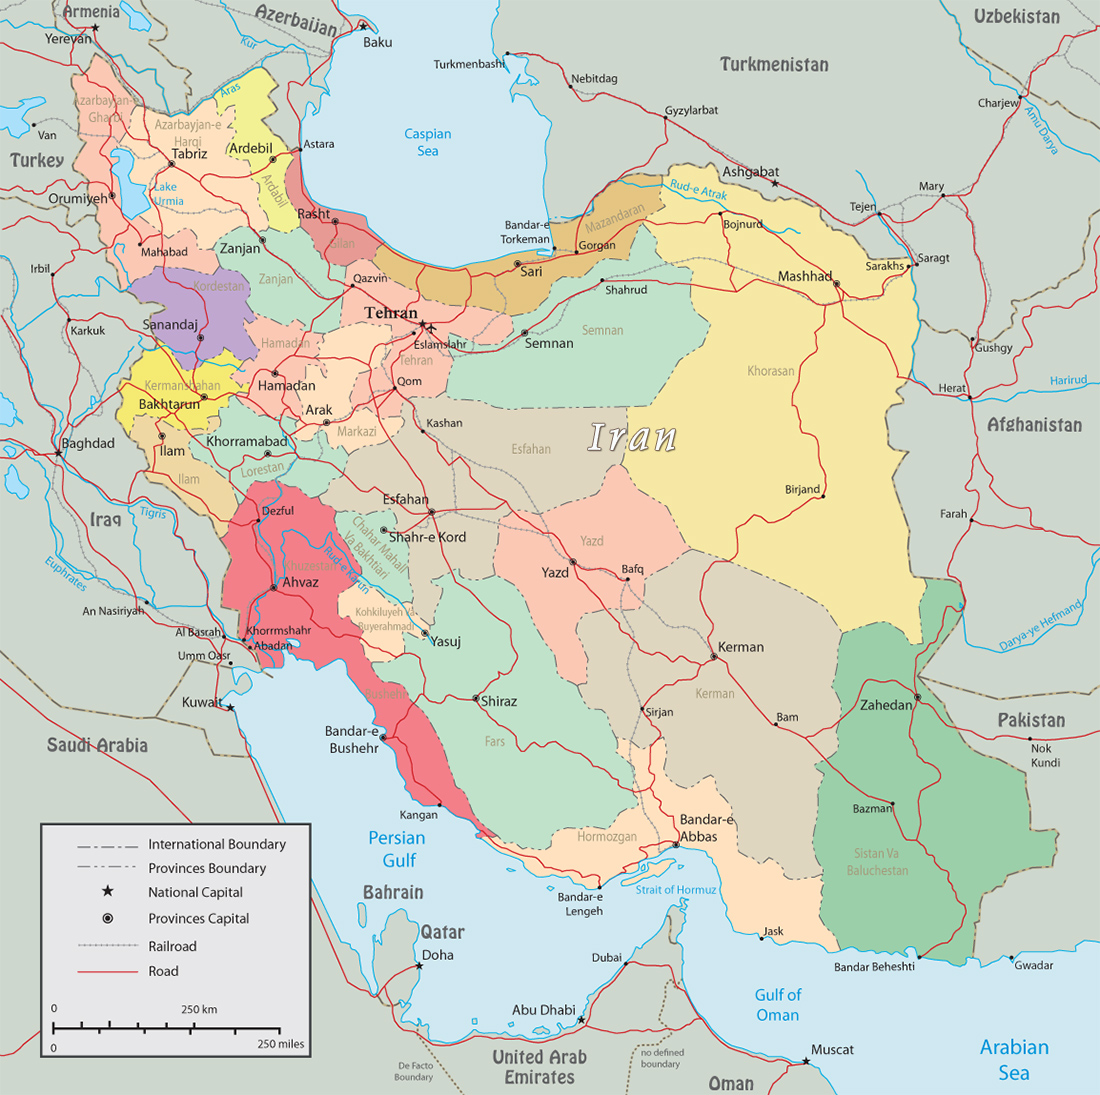 world map cities with Map Political Iran on Denali further Belarus Map Black And White together with Turkish Physical Map Gif also Mauritania Capital Map in addition Map Political Iran.